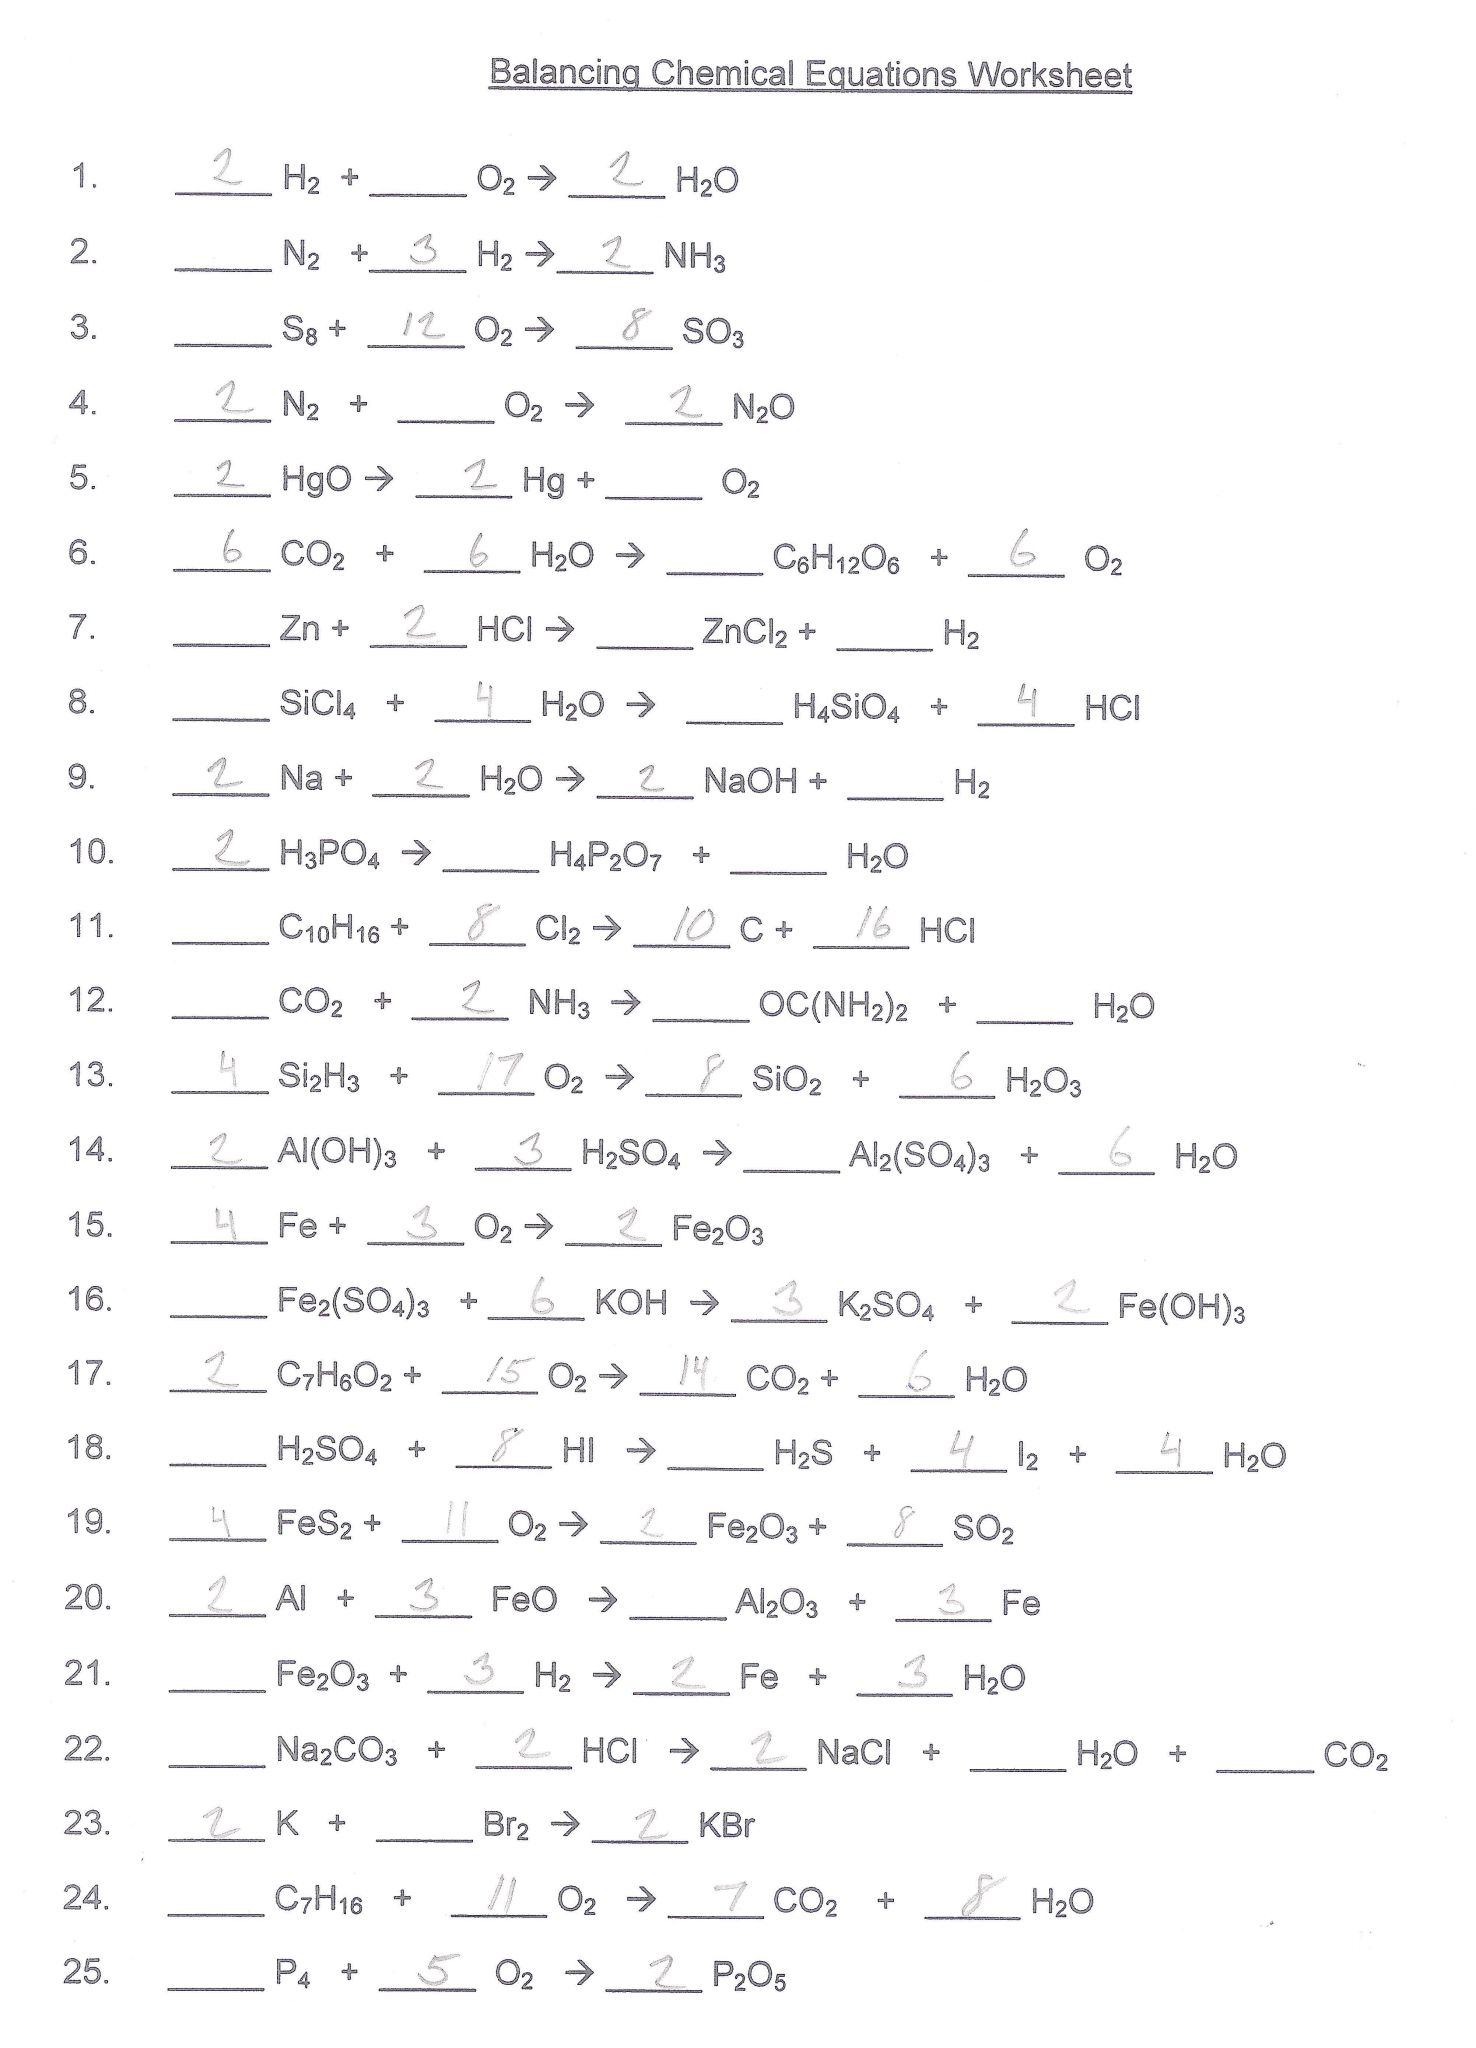 Worksheet On Balancing Ionic Equations